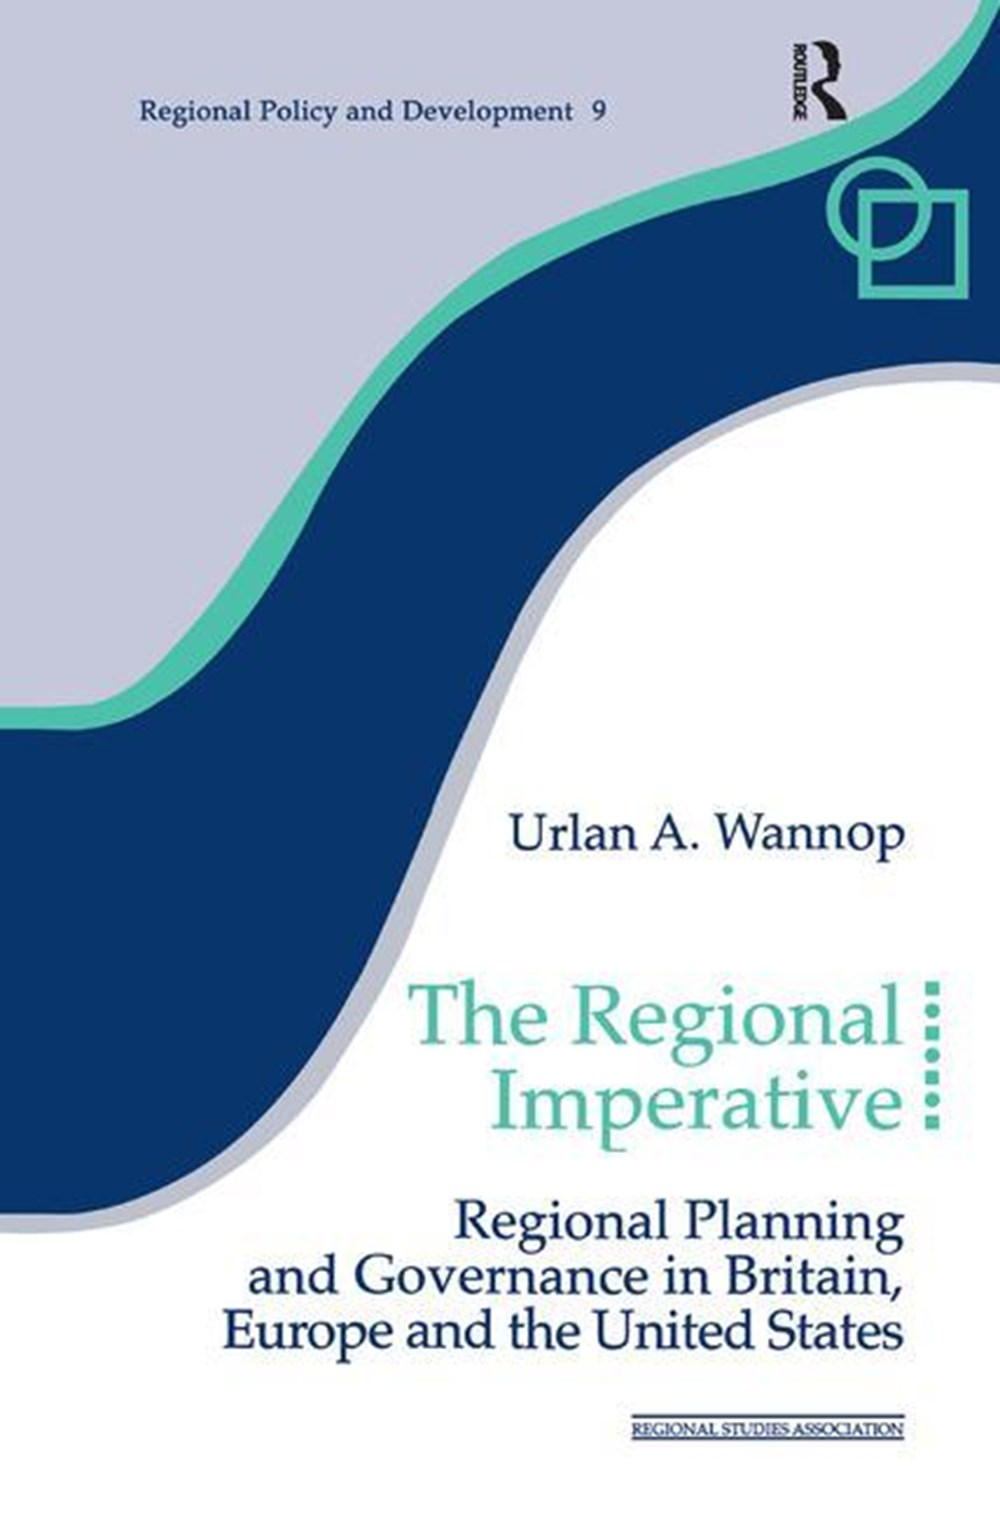 Regional Imperative Regional Planning and Governance in Britain, Europe and the United States